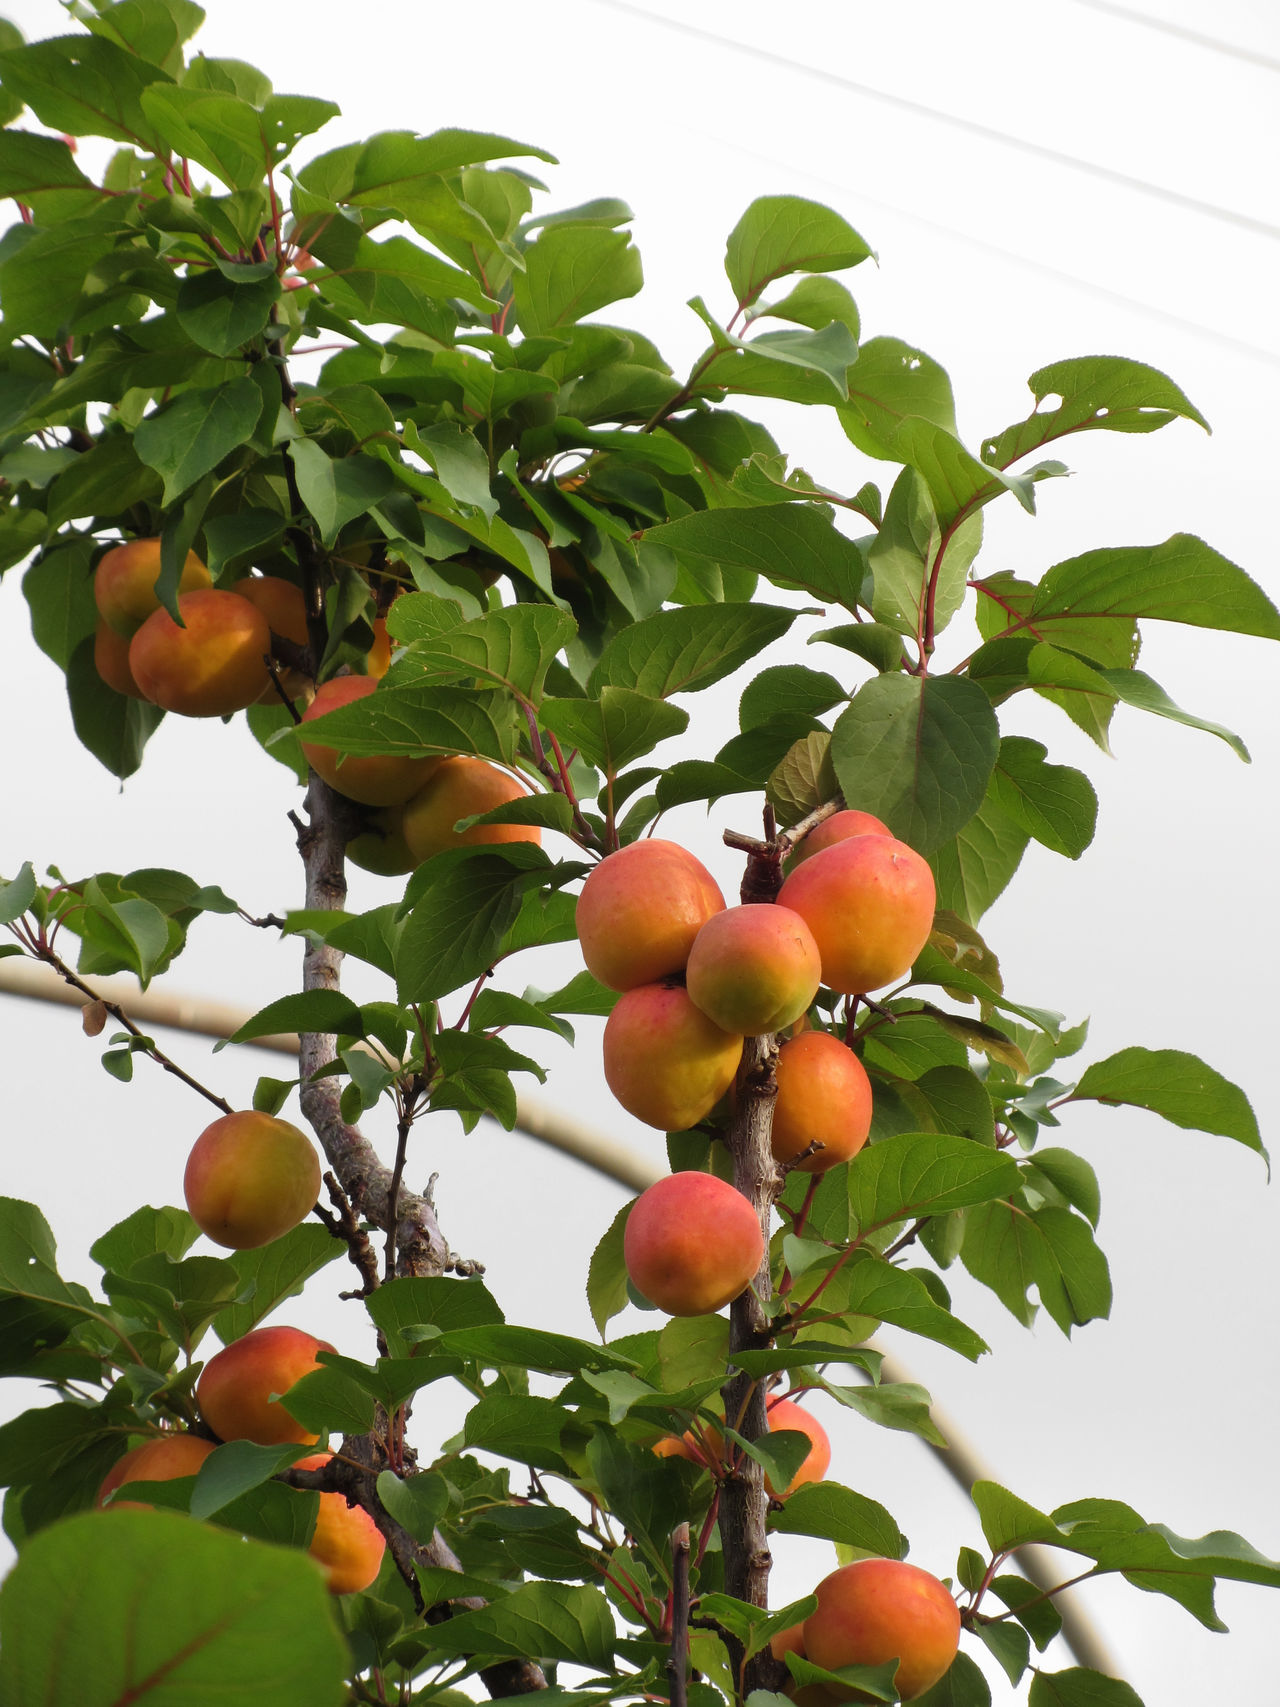 Ripe apricots hanging on the tree . Tuscany, Italy Agriculture Apricot Apricot Tree Branch Food Fruit Garden Growing Hanging Harvest Juicy Leaf Orchard Raw Refreshment Ripe Ruddy Rural Scent Stem Sweet Tree Vegan Food Vegetarian Food Vitamin